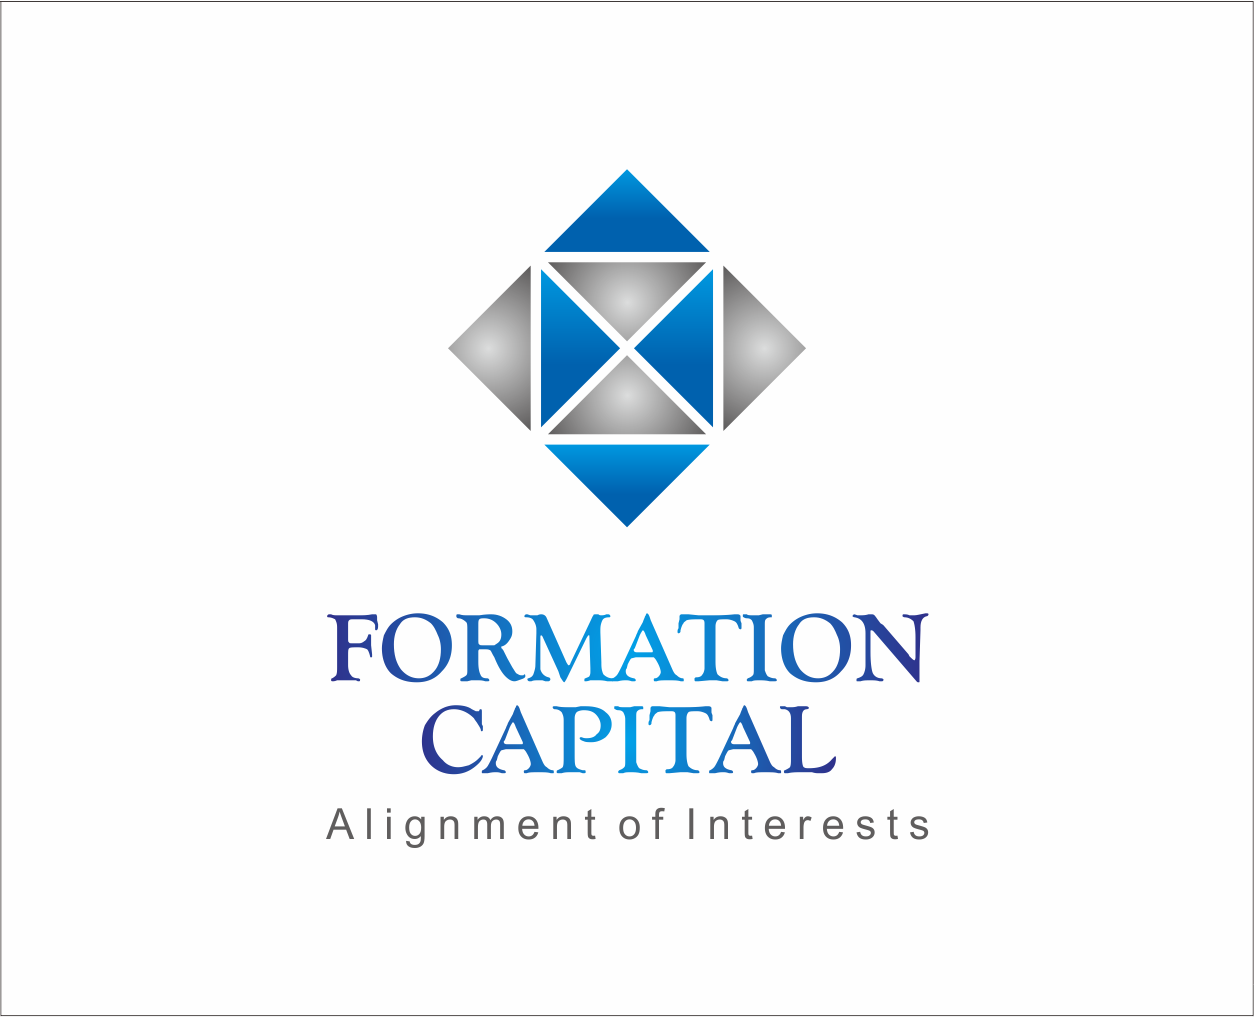 Logo Design by Armada Jamaluddin - Entry No. 203 in the Logo Design Contest Inspiring Logo Design for Formation Capital.